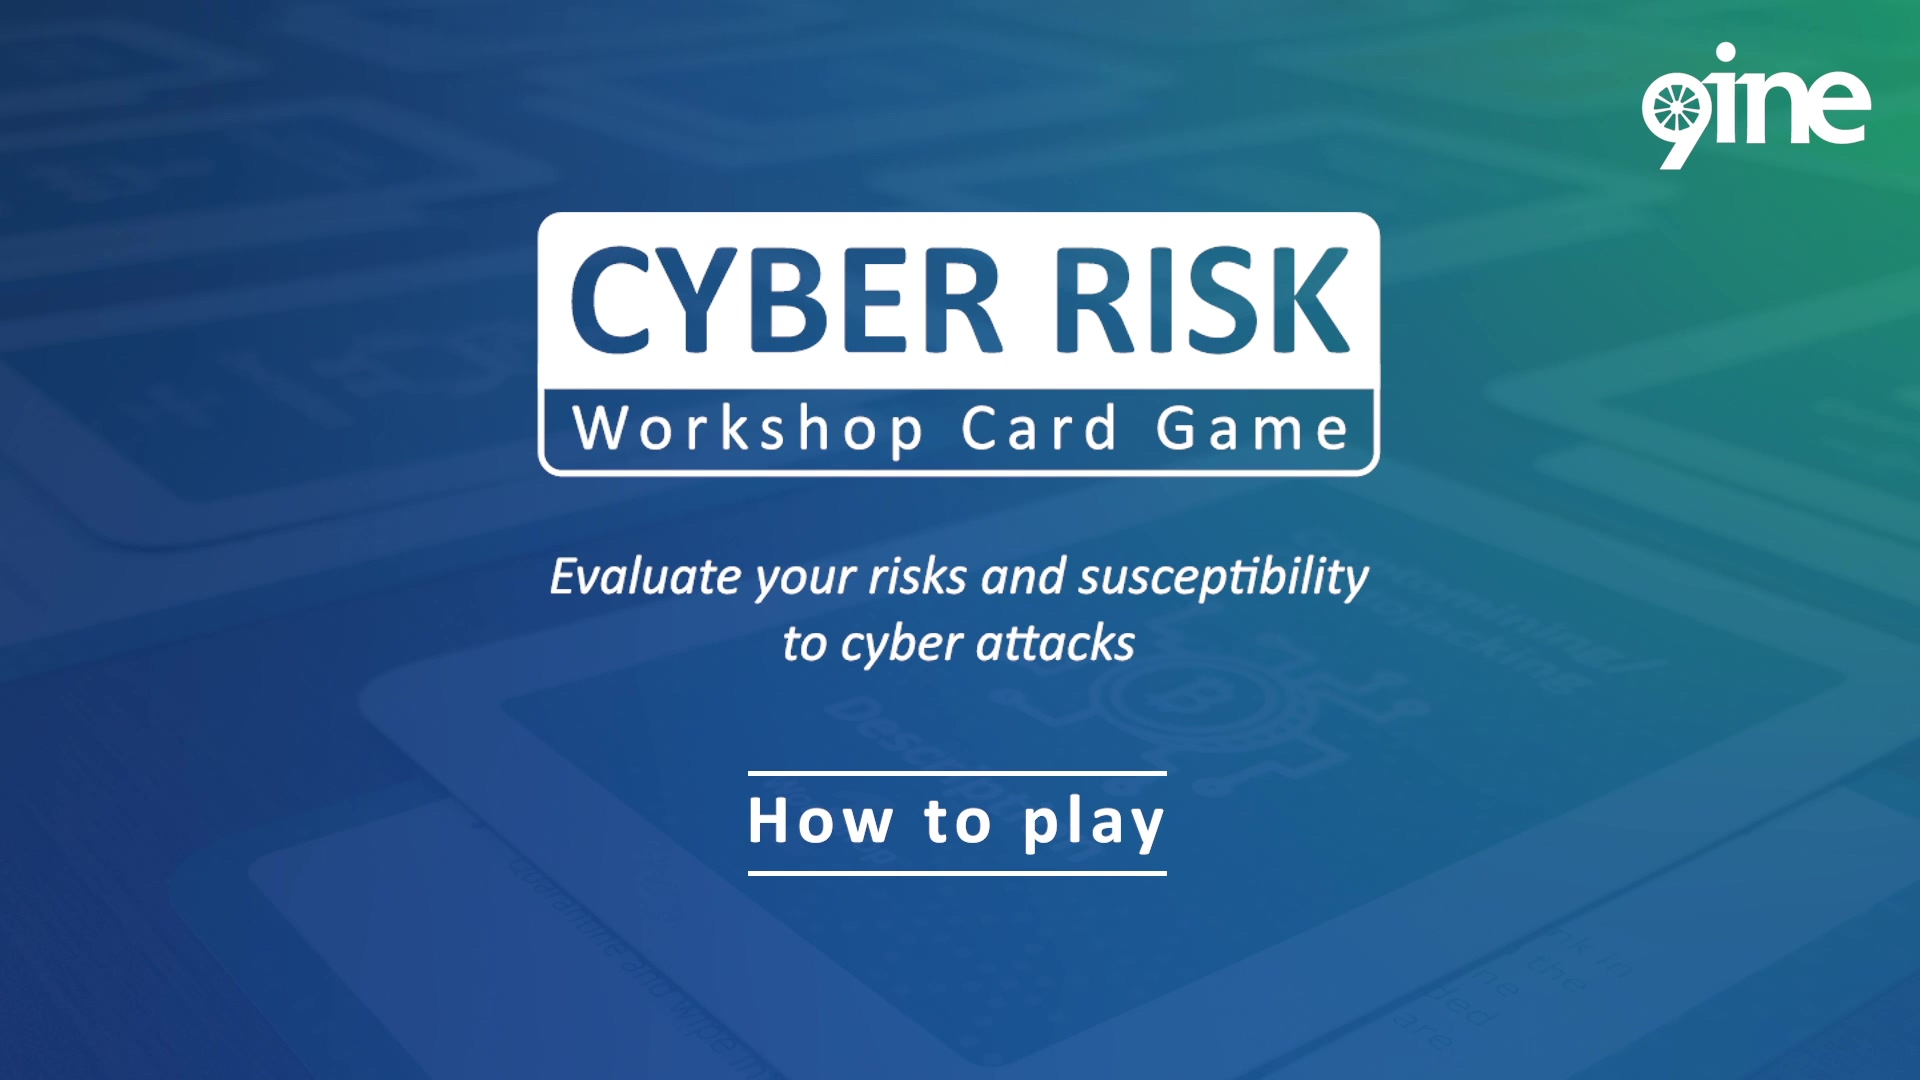 9ine_Cyber Risk_Workshop Card Game_How to Play_v0.2